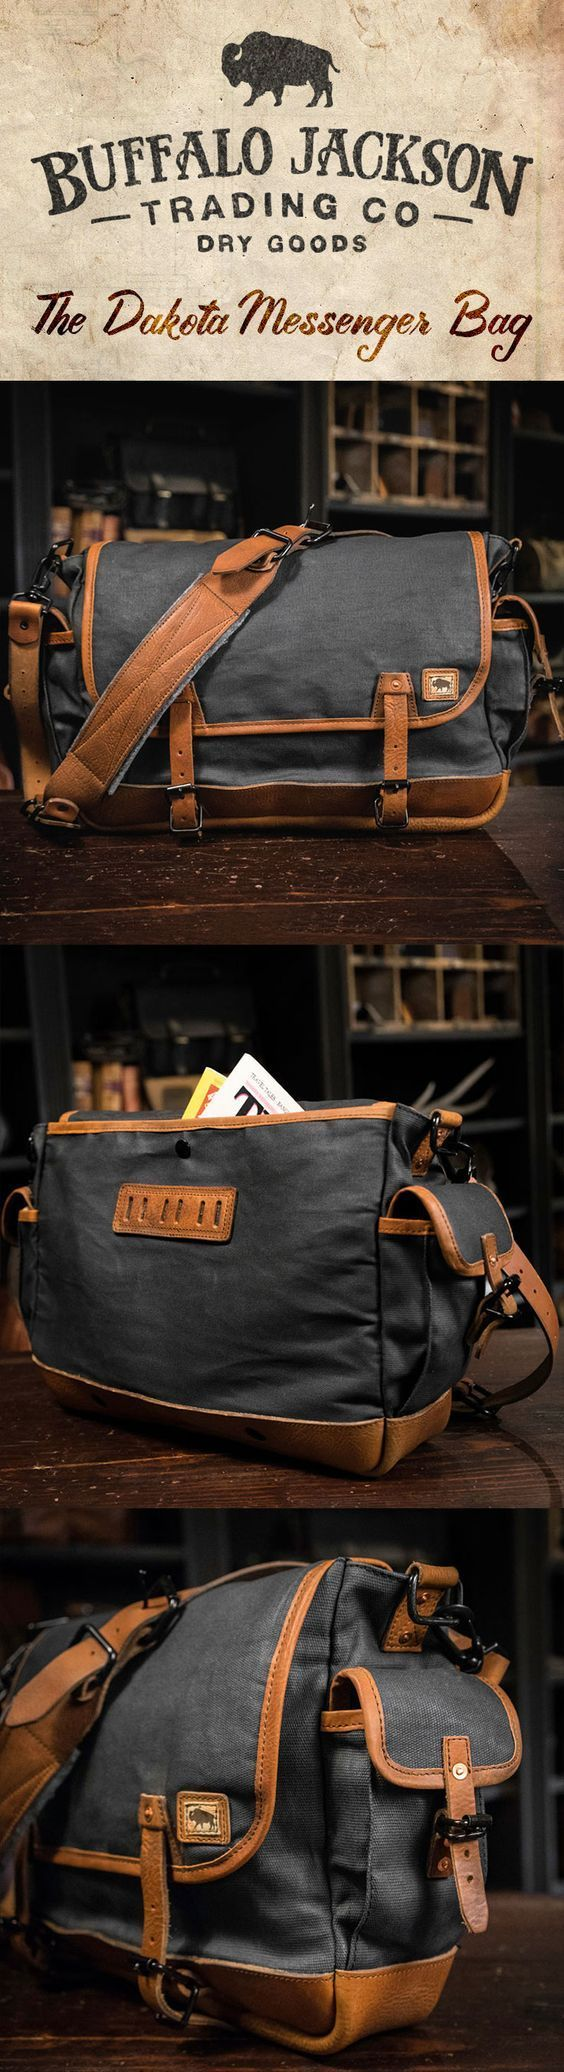 This traditional sized vintage military messenger bag is crafted from waxed canvas with leather accents, perfect for your laptop, meeting materials, and your copy of Harrison & Kooser's Braided Creek (to read during your meeting). men's bags | vintage satchel bags